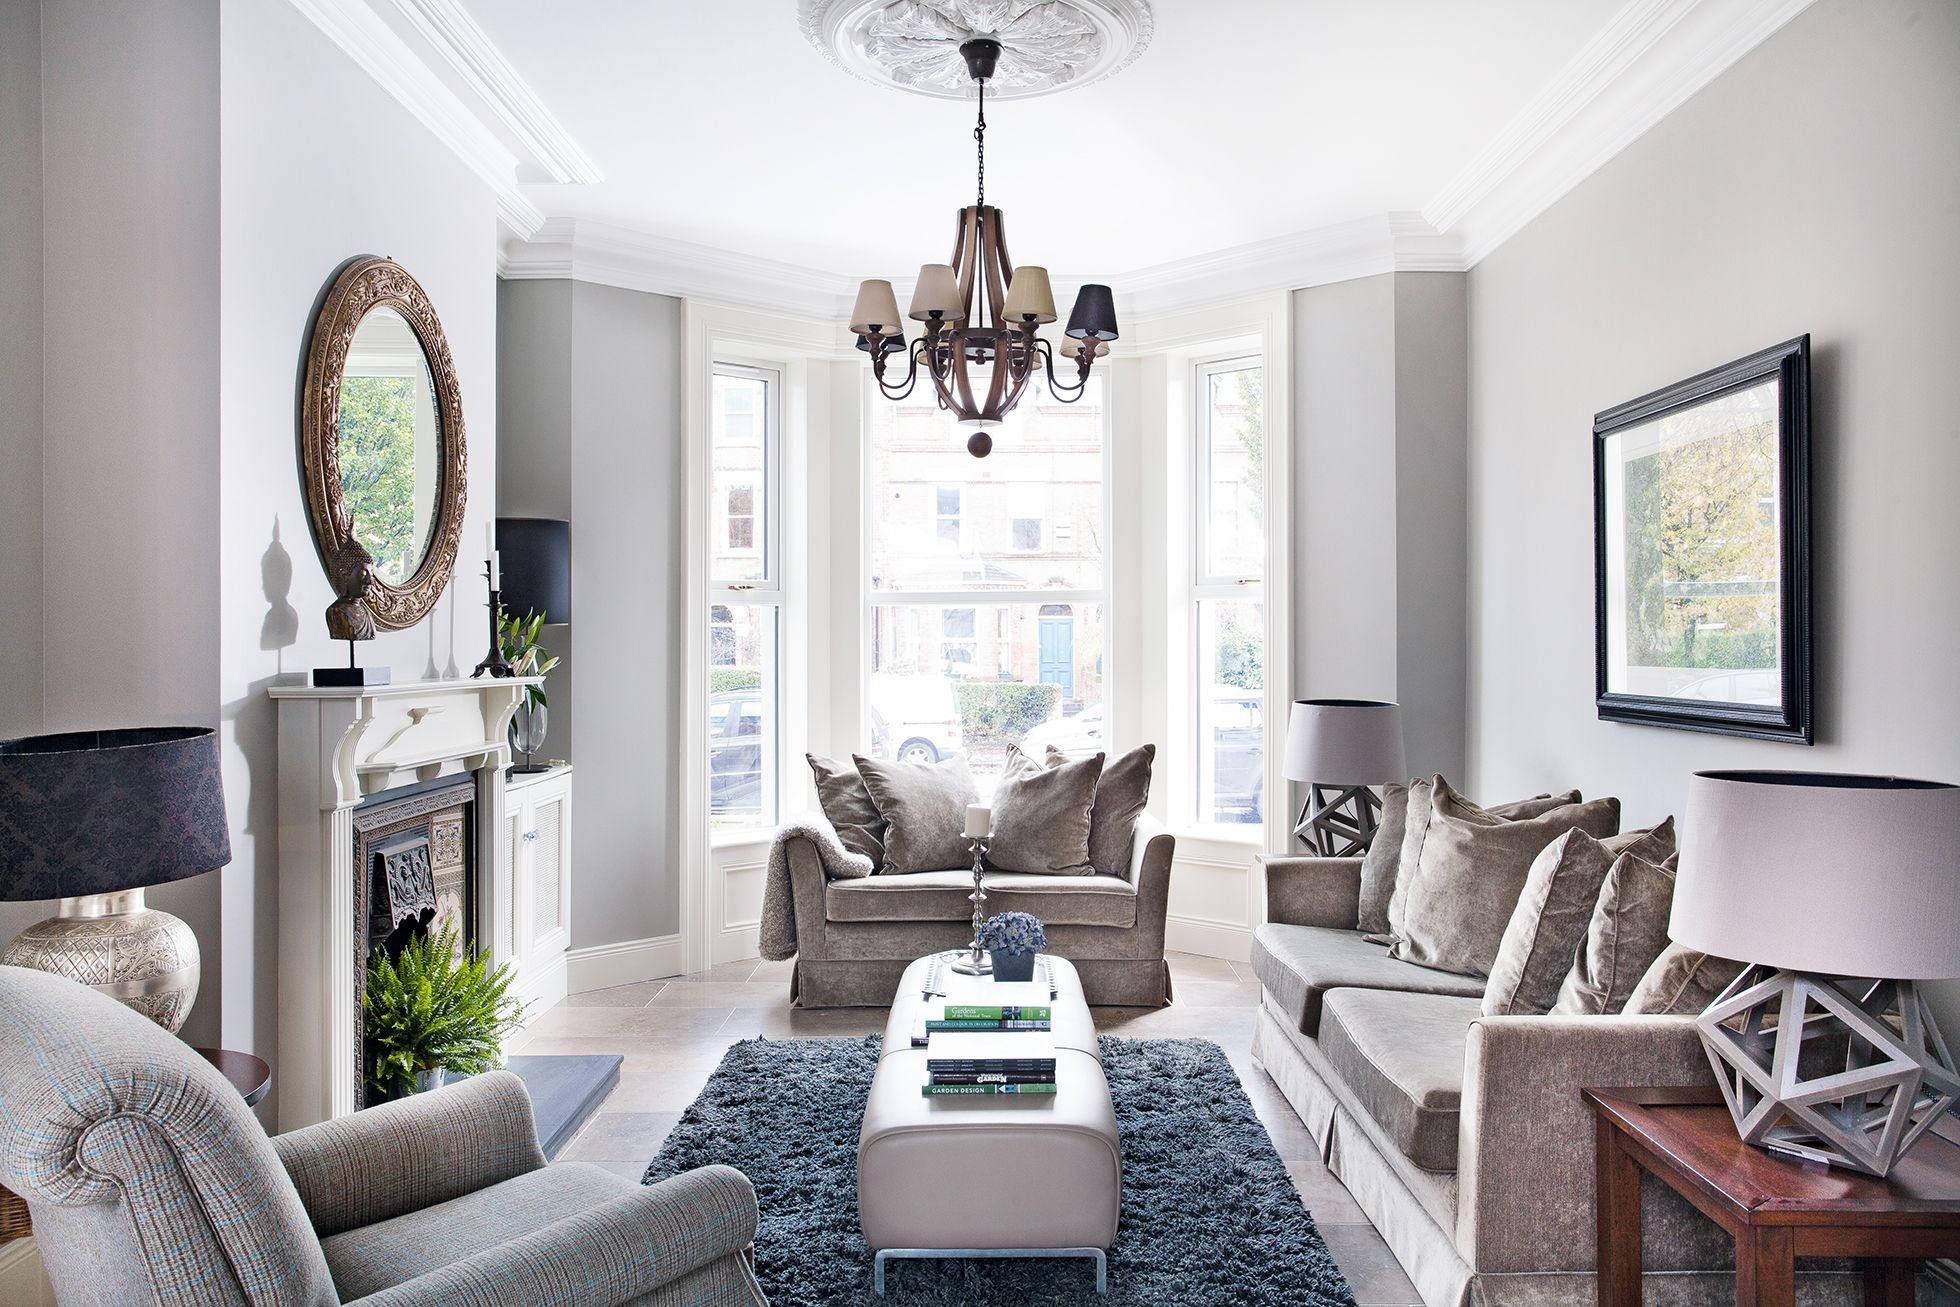 Andrew Brennan Has Redesigned The Layout Of His Townhouse While